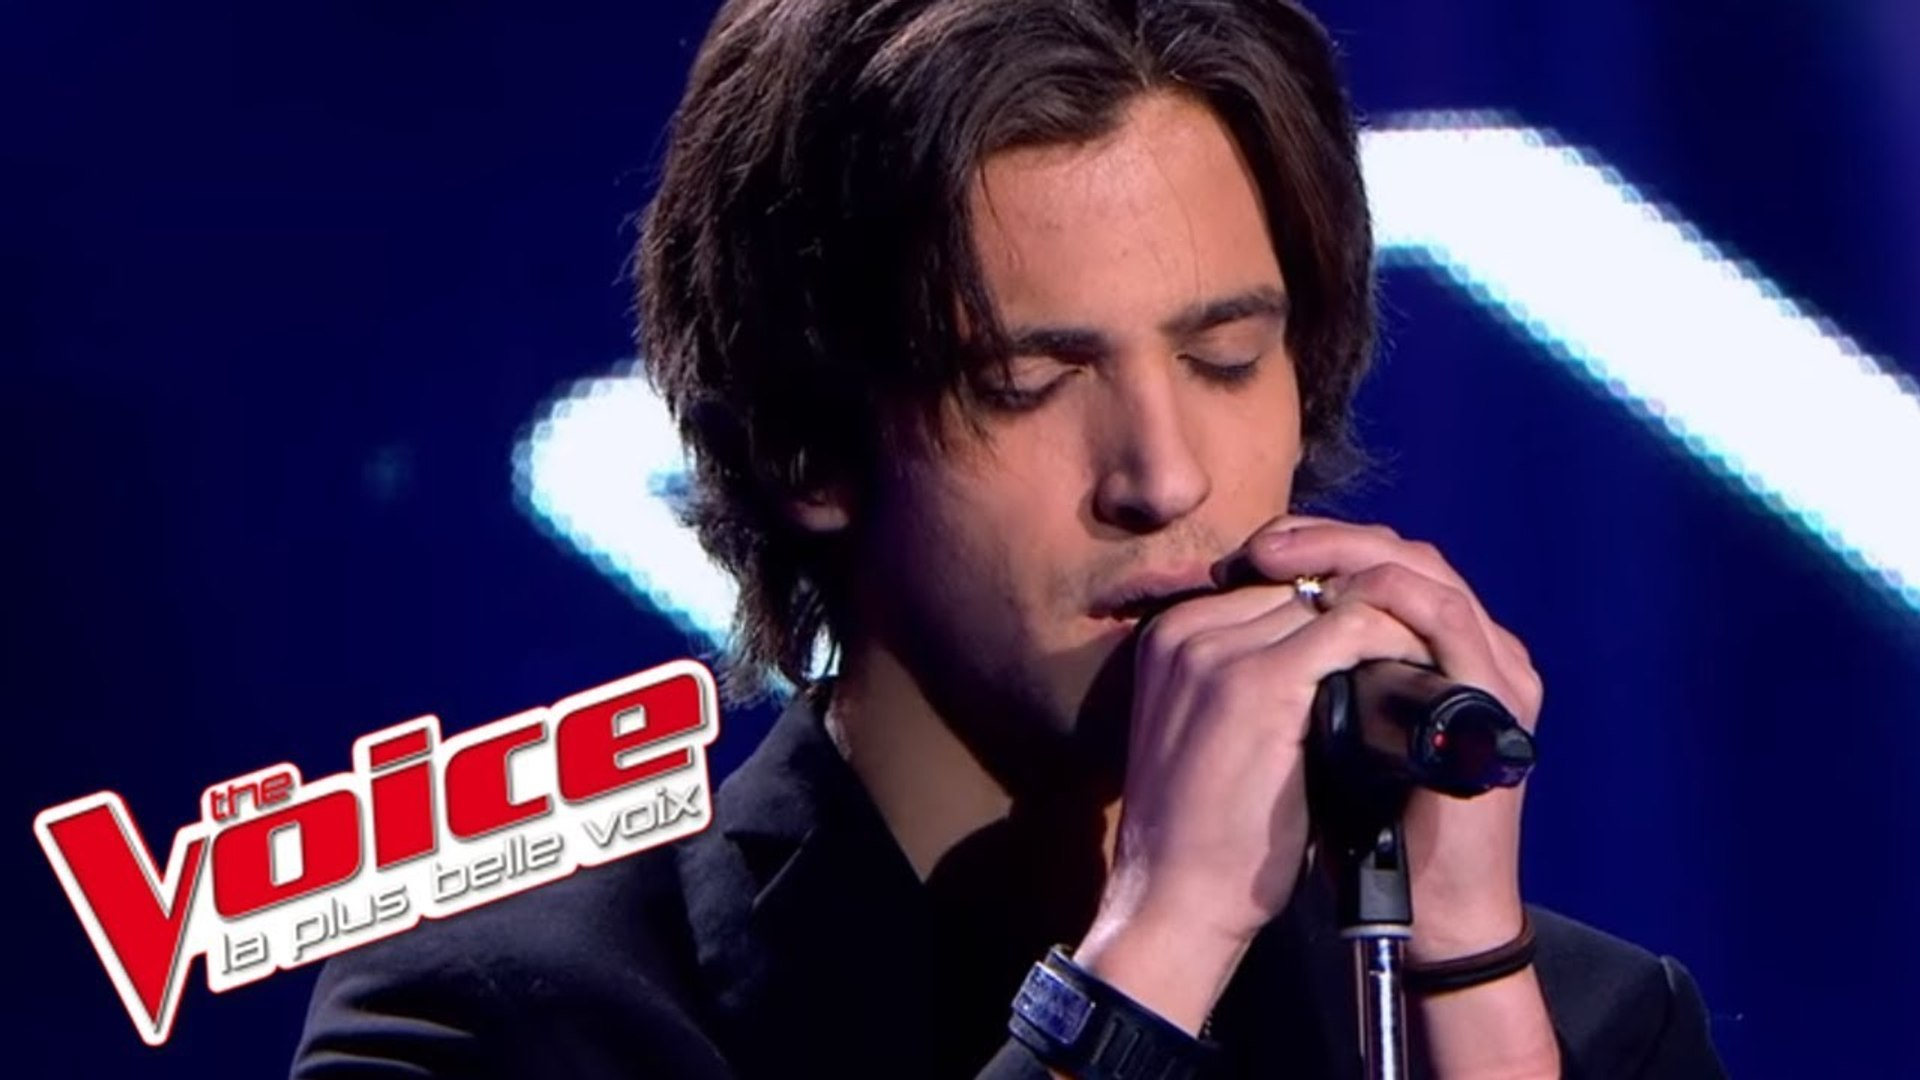 Elton John – Your Song | Raf | The Voice France 2013 | Blind Audition